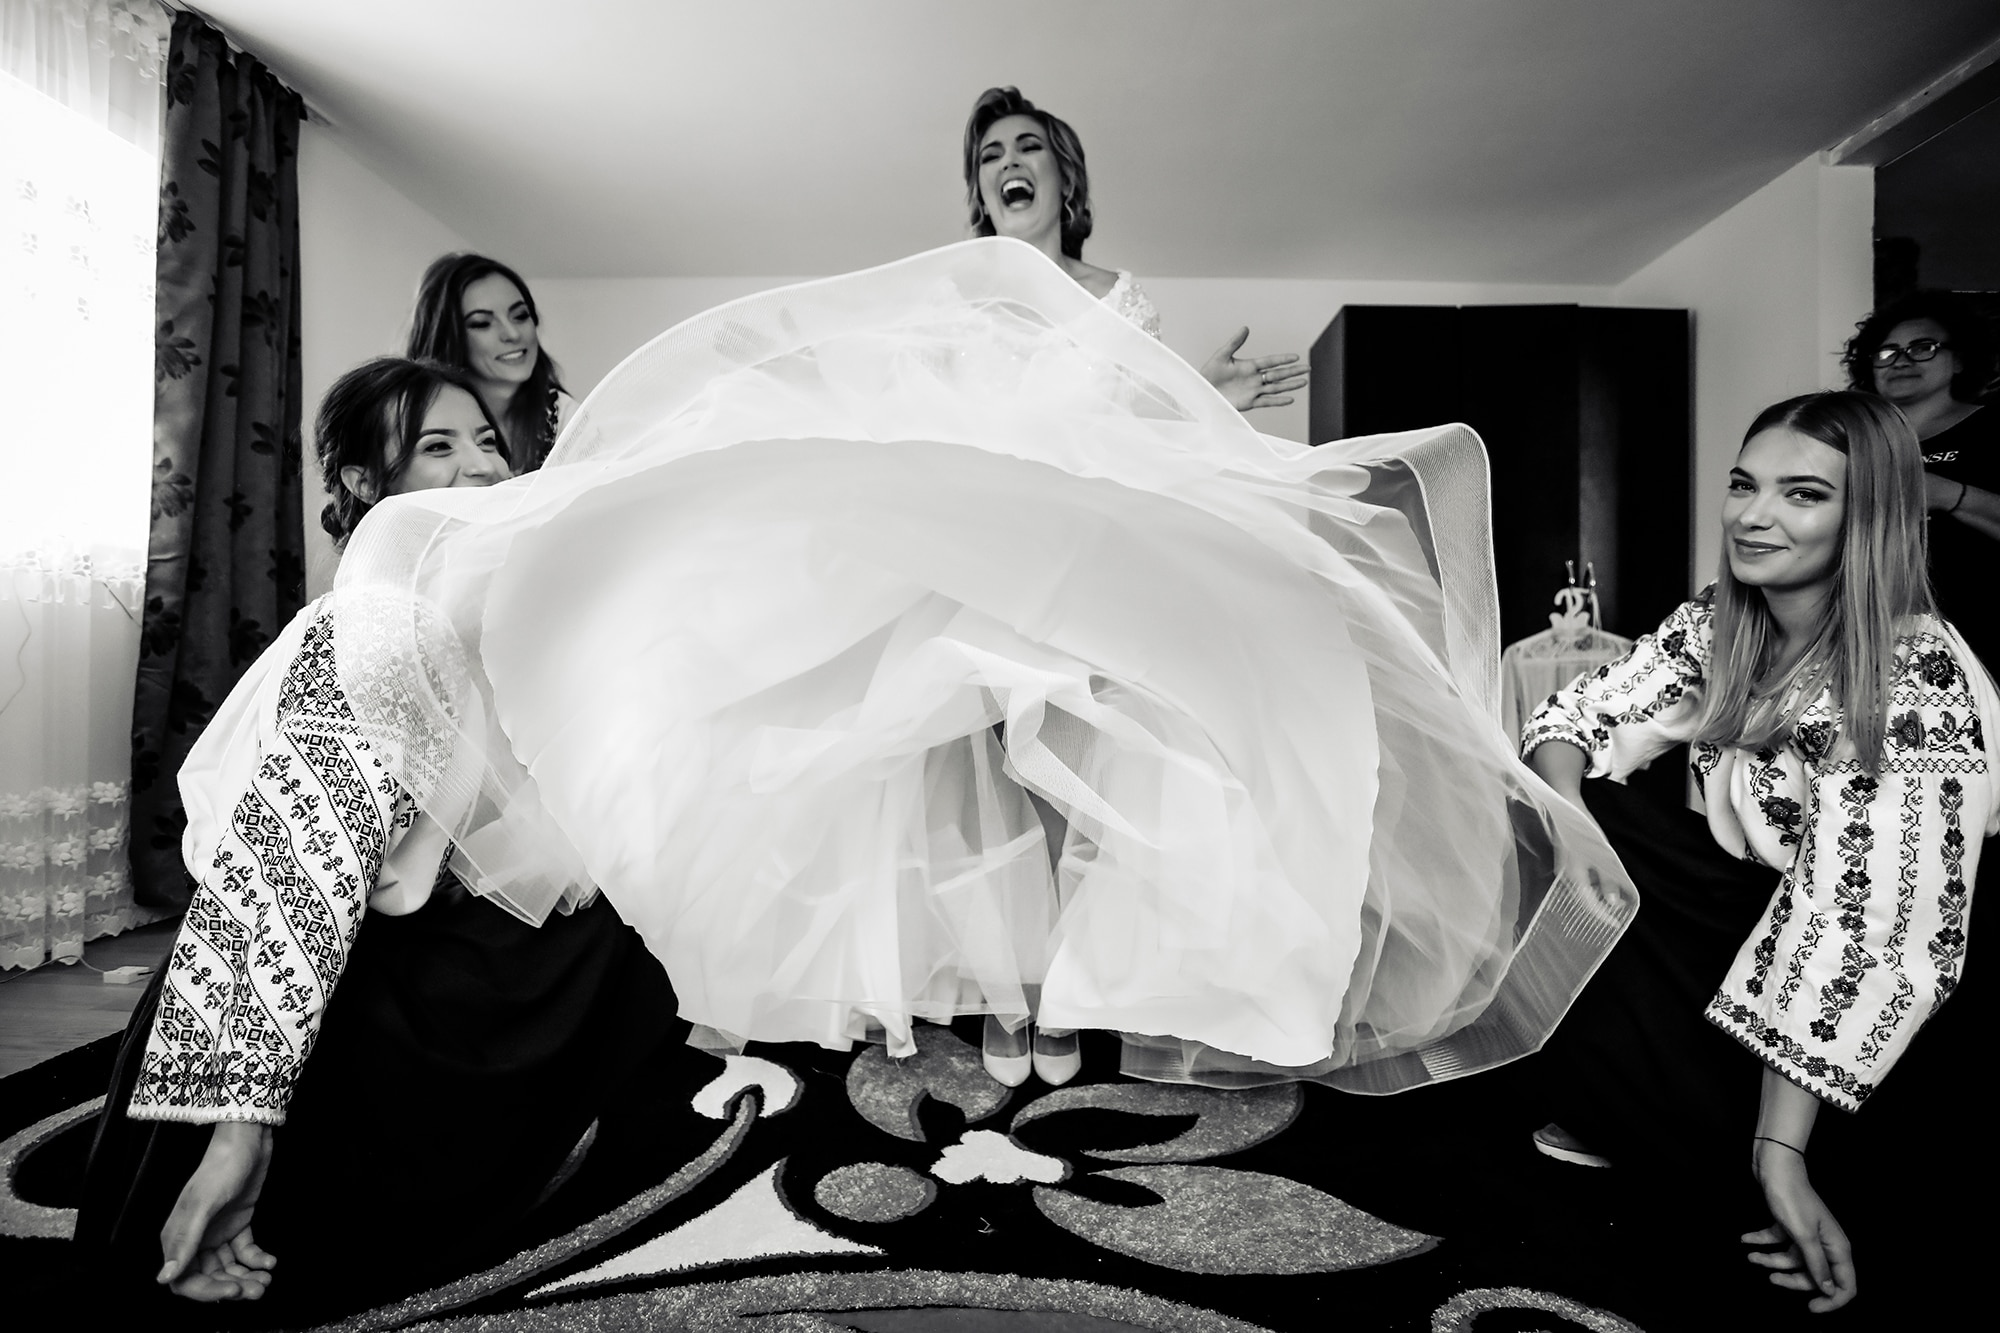 fotograf_nunta_suceava_romania_wedding_photographer_europe-(7)